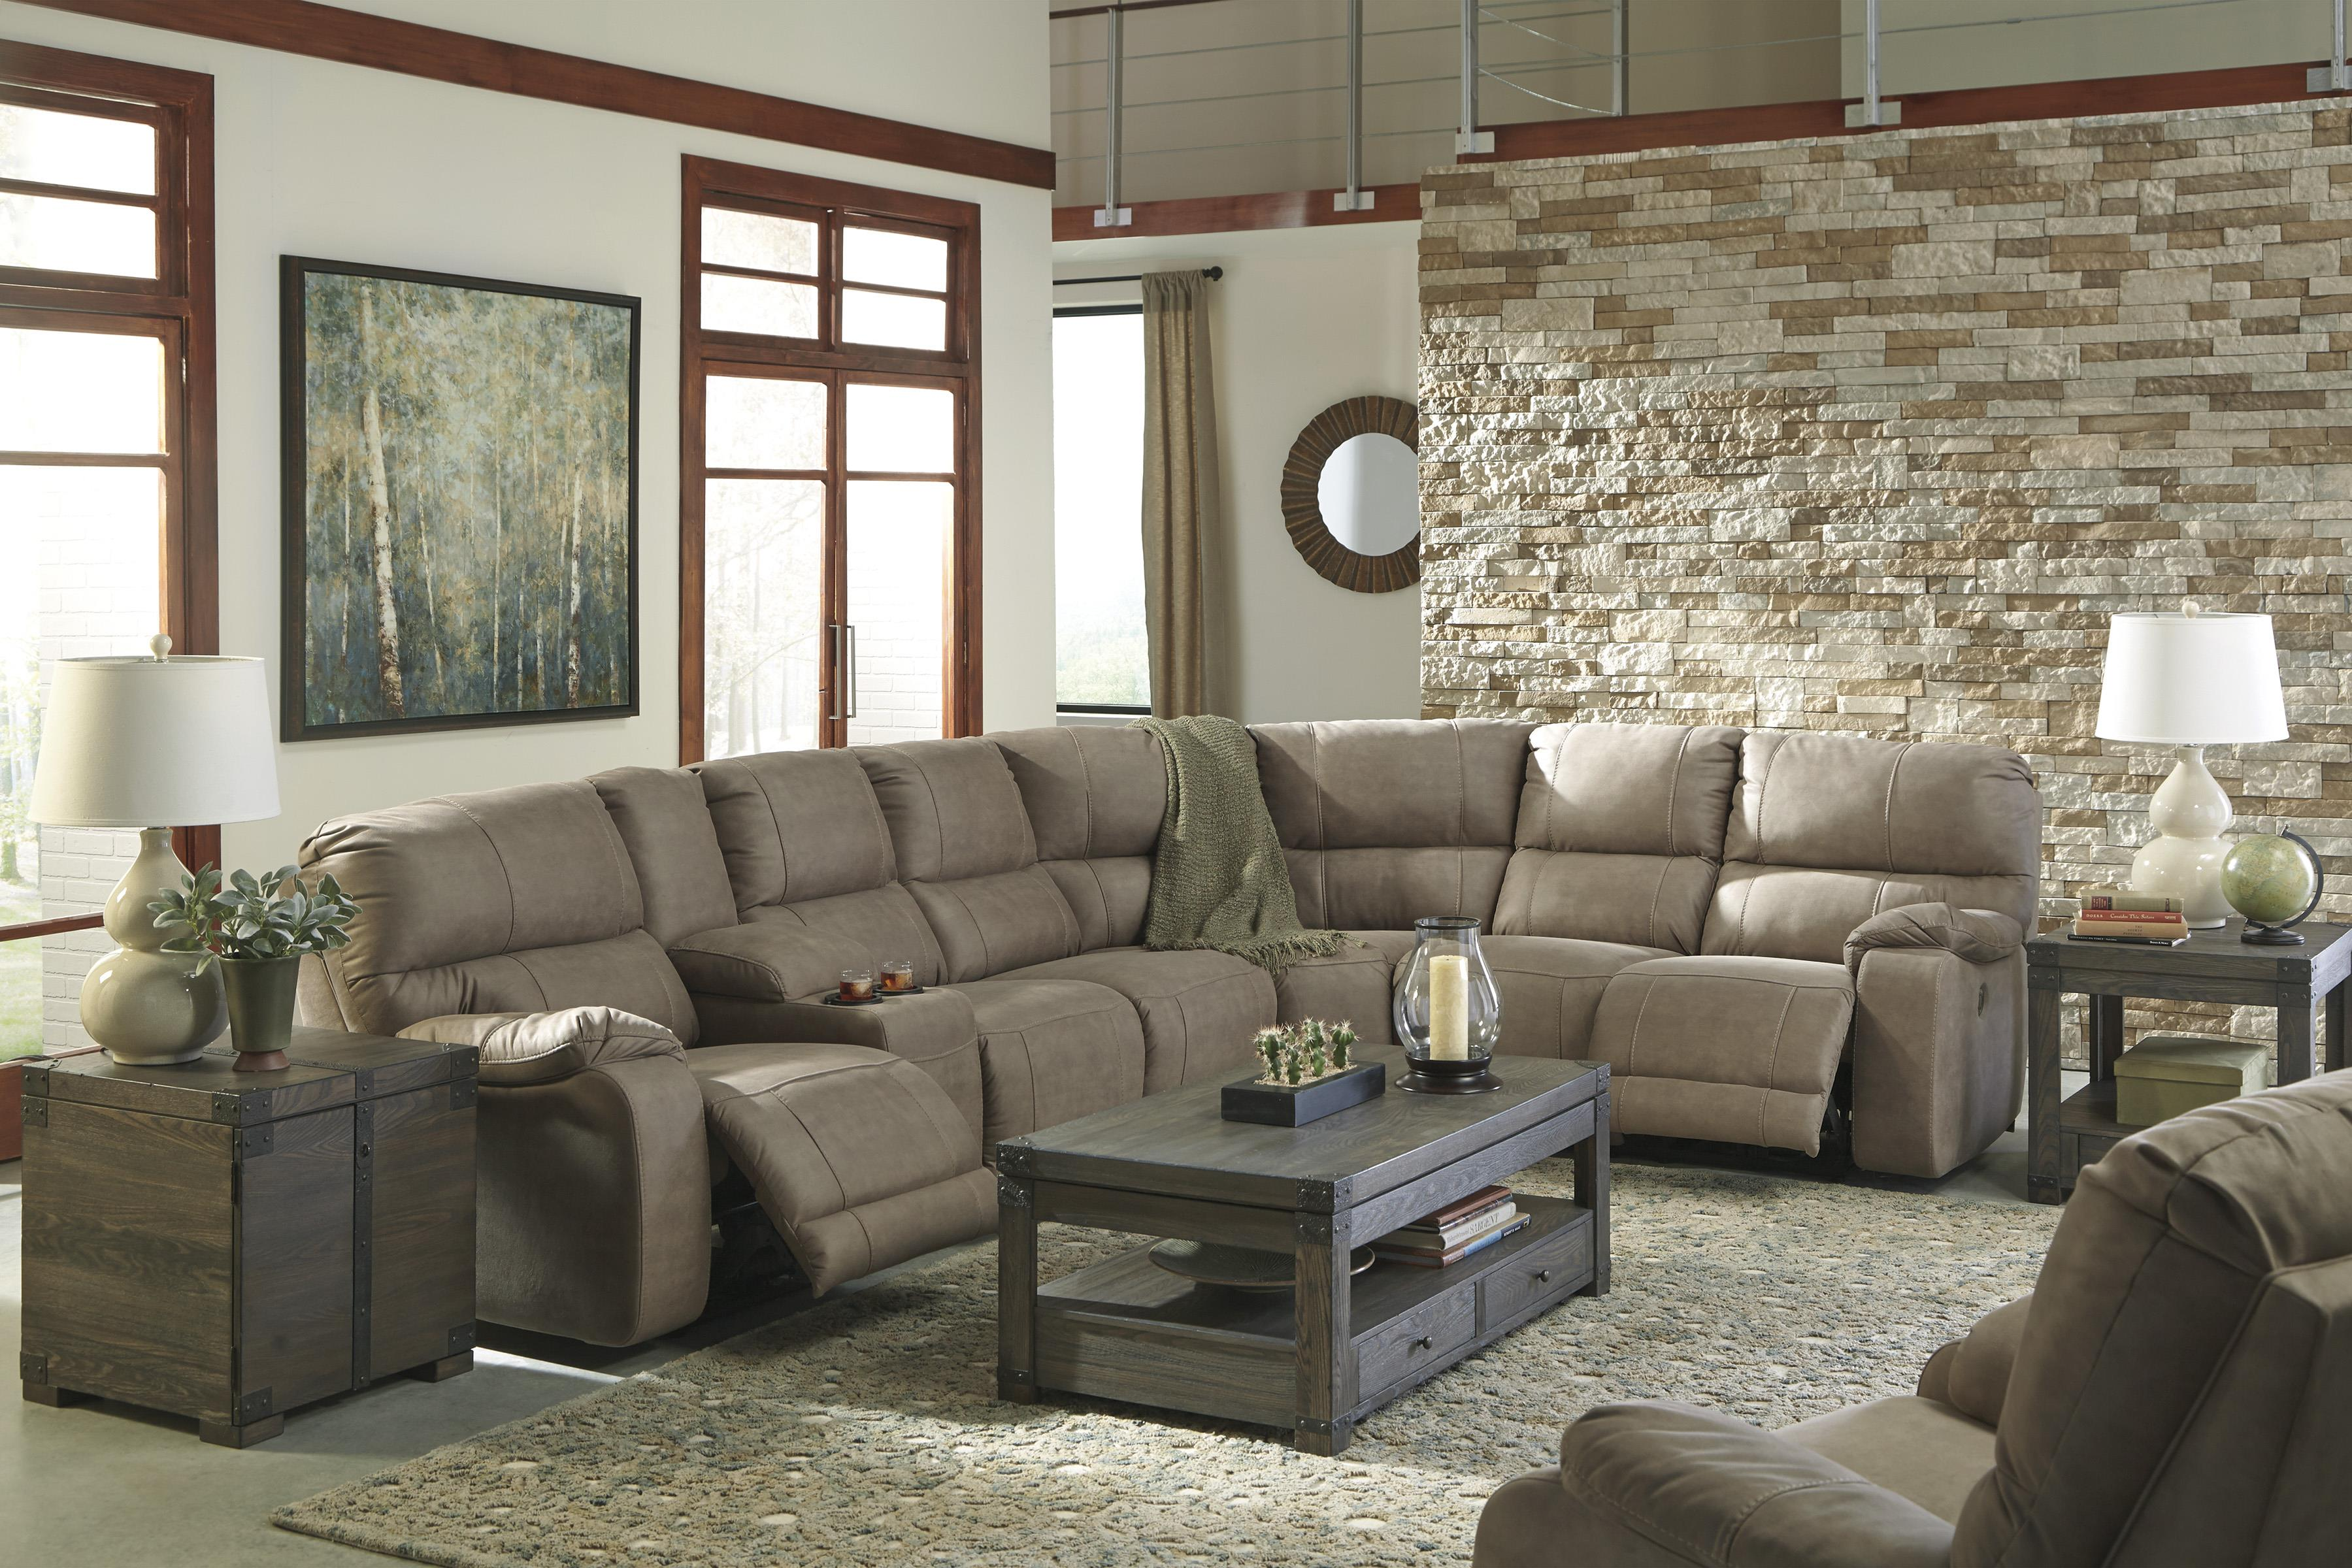 Benchcraft by Ashley Bohannon Power Reclining Sectional with Console - A1 Furniture u0026 Mattress - Reclining Sectional Sofa : sectional power recliner - Sectionals, Sofas & Couches